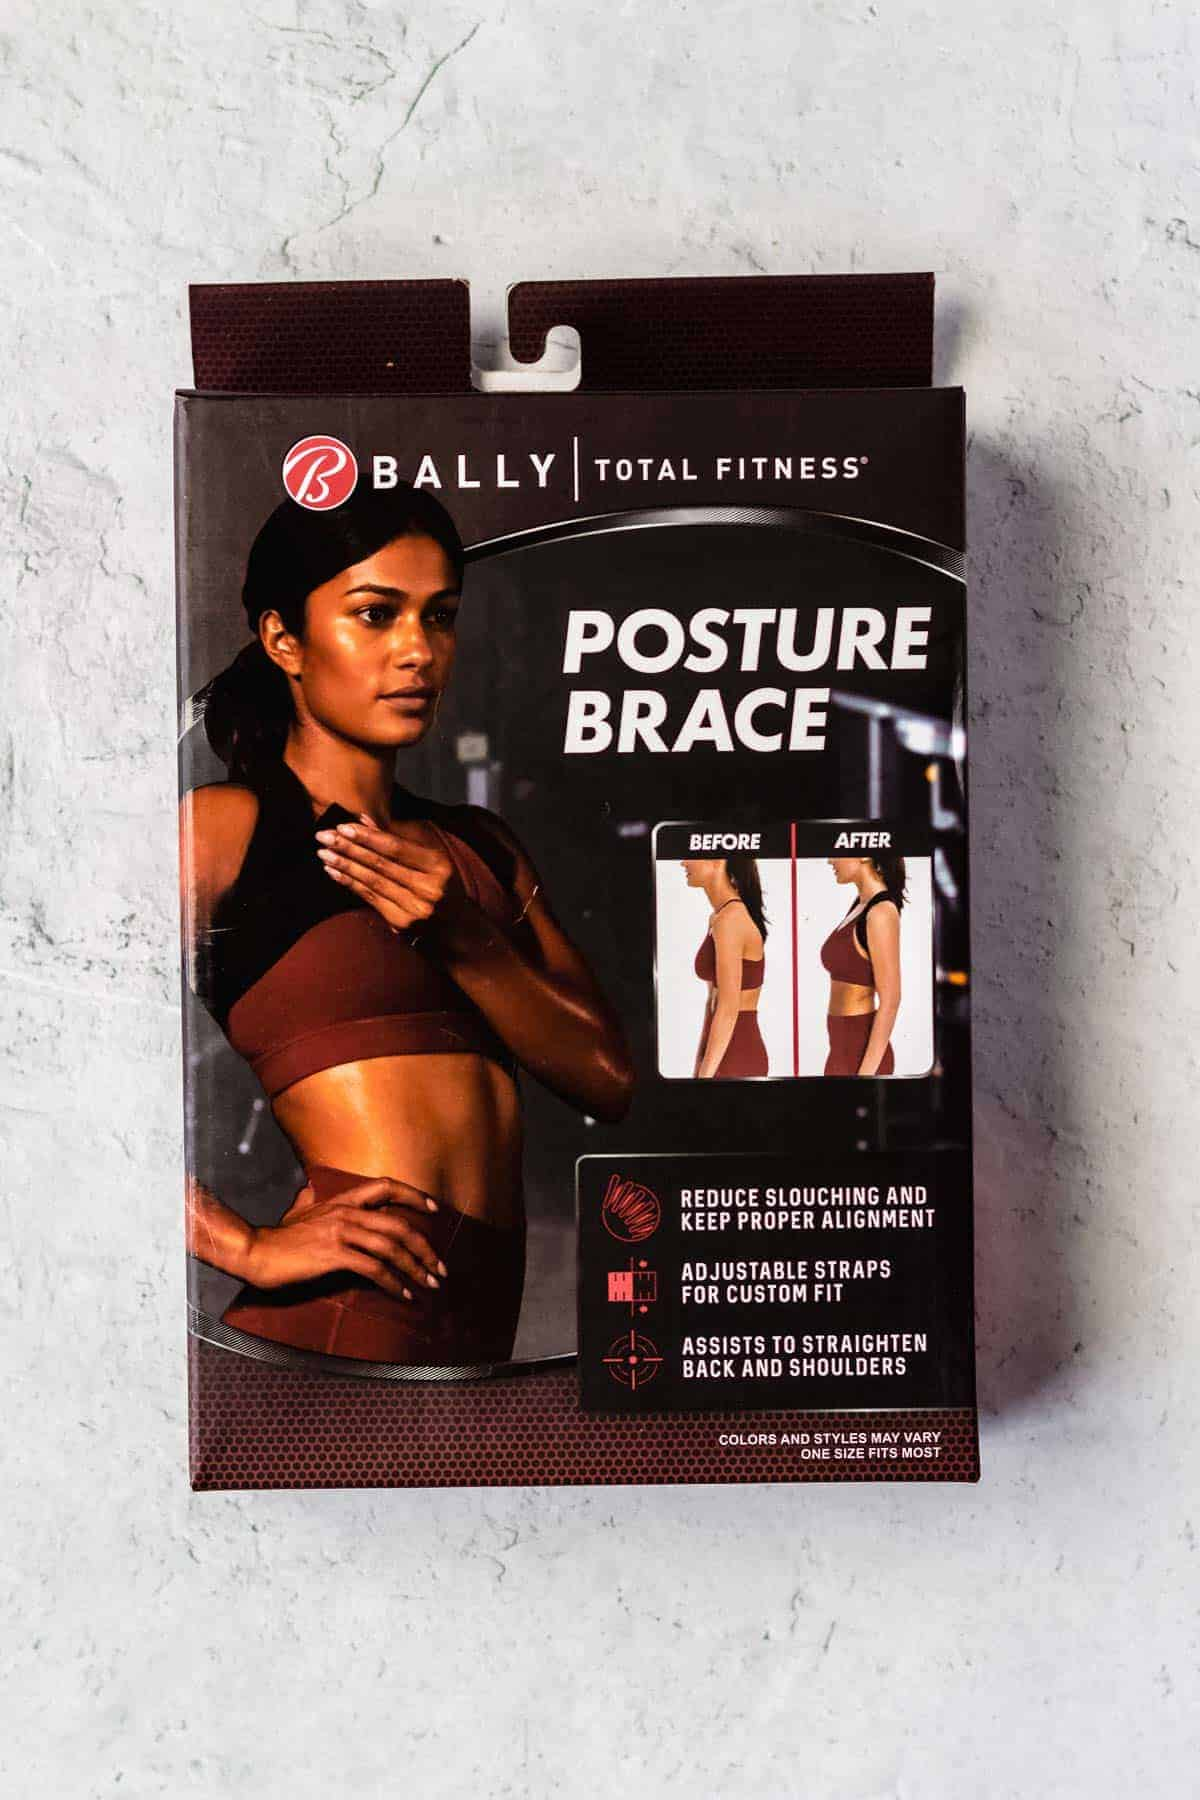 bally total fitness posture brace package on a white background